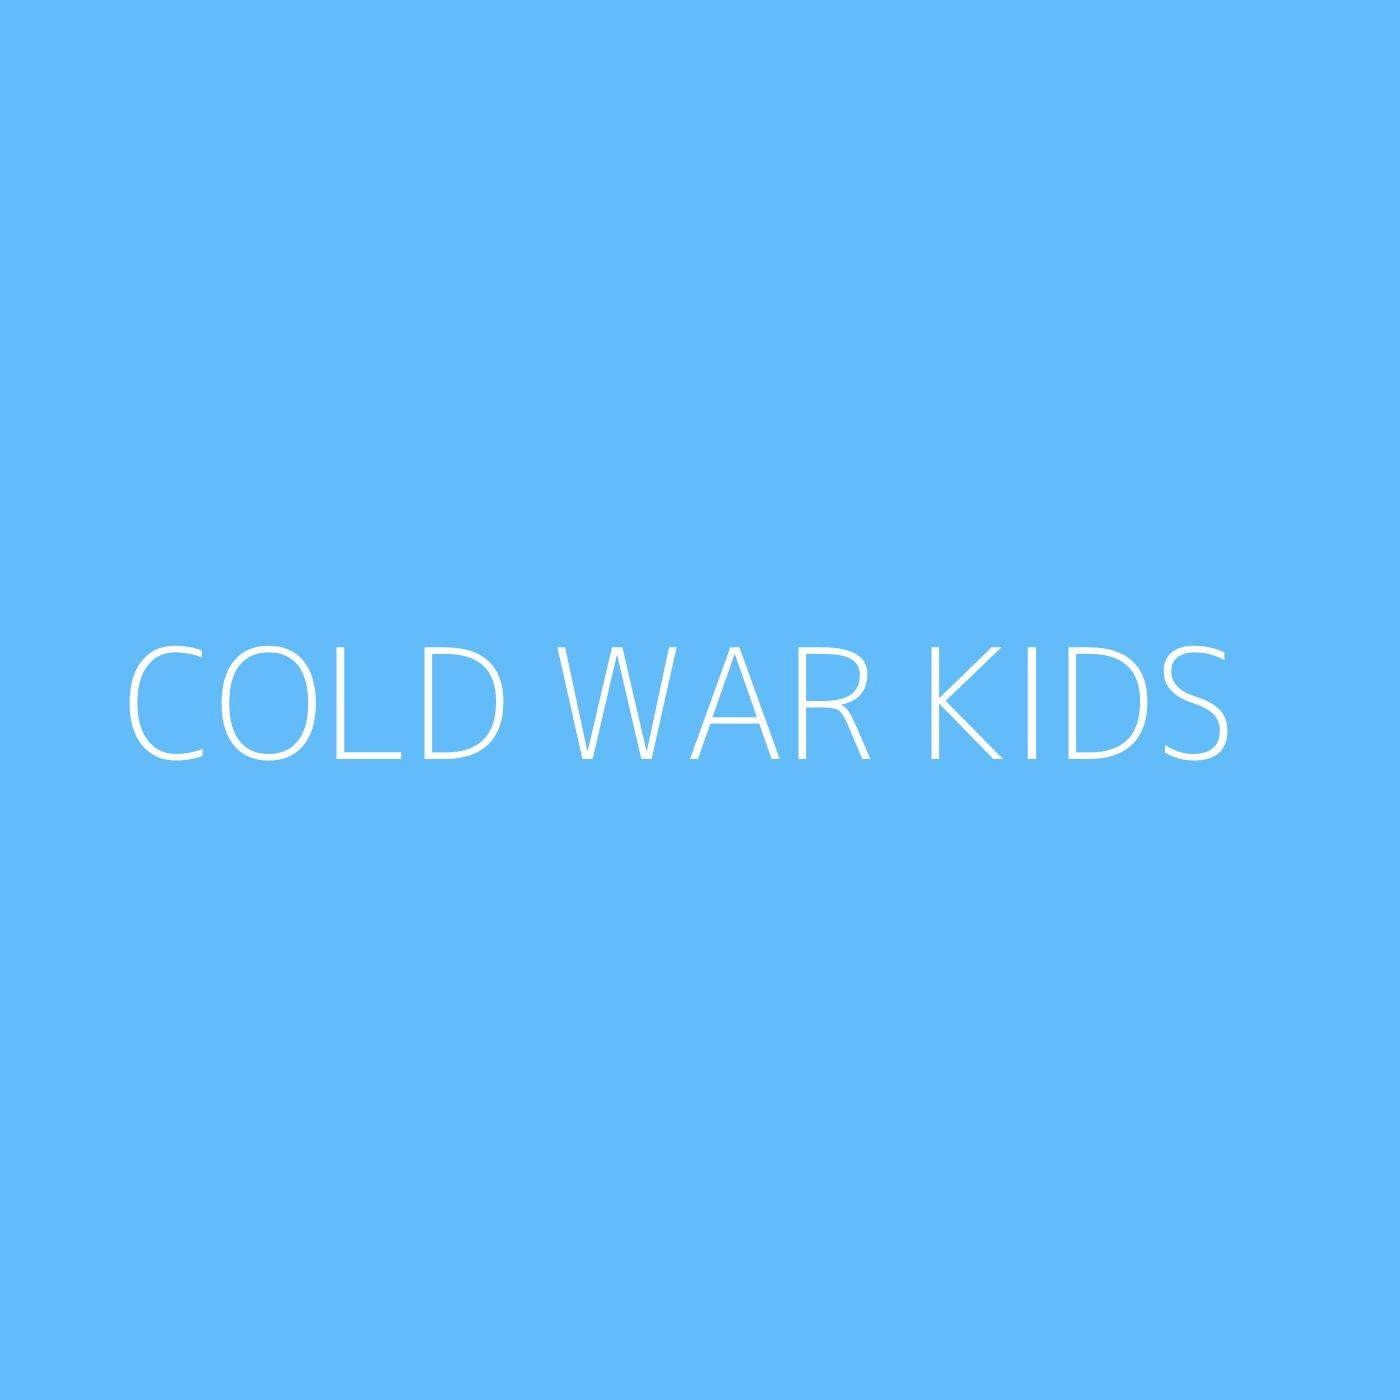 Cold War Kids Playlist Artwork